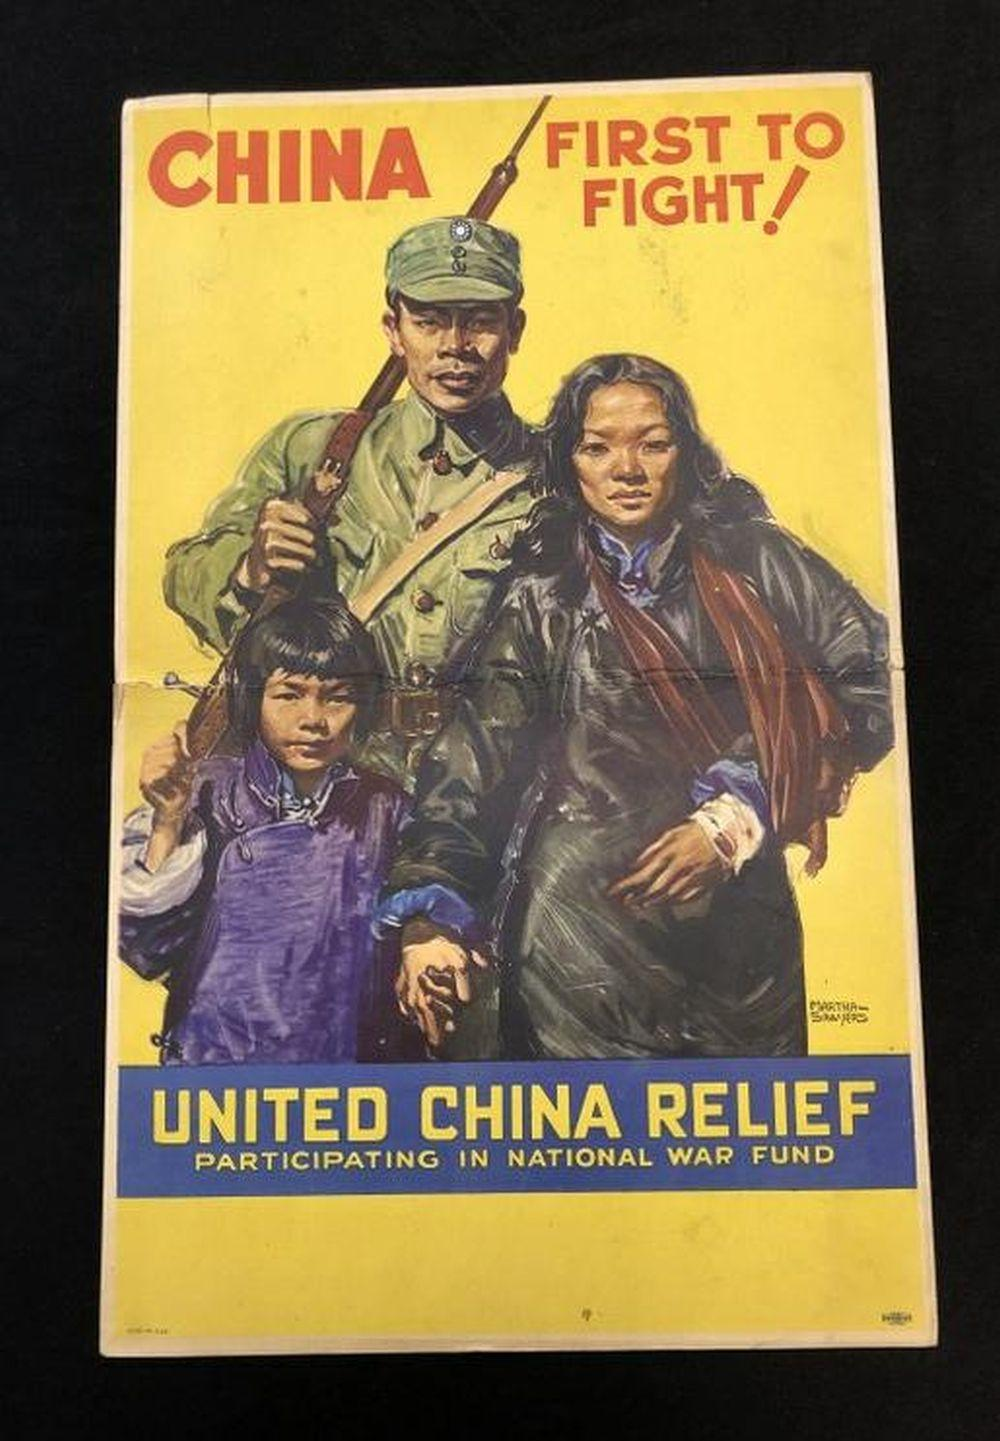 UNITED CHINA RELIEF CARDBOARD POSTER, ARTIST MARTHA